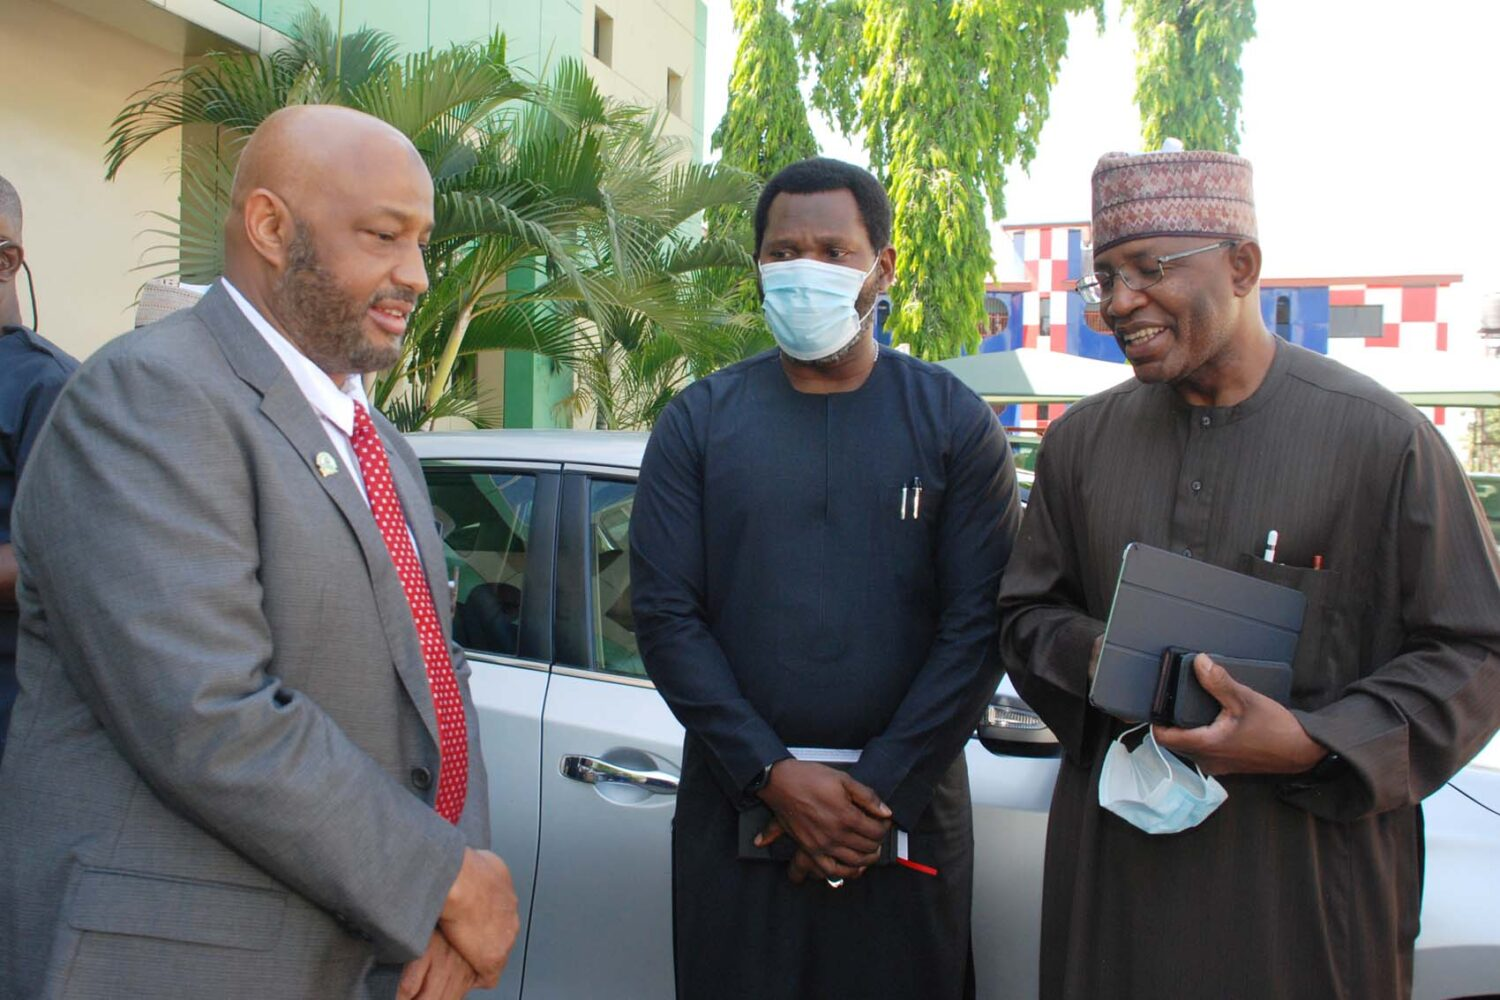 L-R,  Director General, Standards Organization of Nigeria Mallam Farouk Salim, Executive Commissioner Operations Securities and Exchange Commission  Mr Dayo Obisan and Director General SEC Mr Lamido Yuguda during a Meeting between The SEC and SON in Abuja.